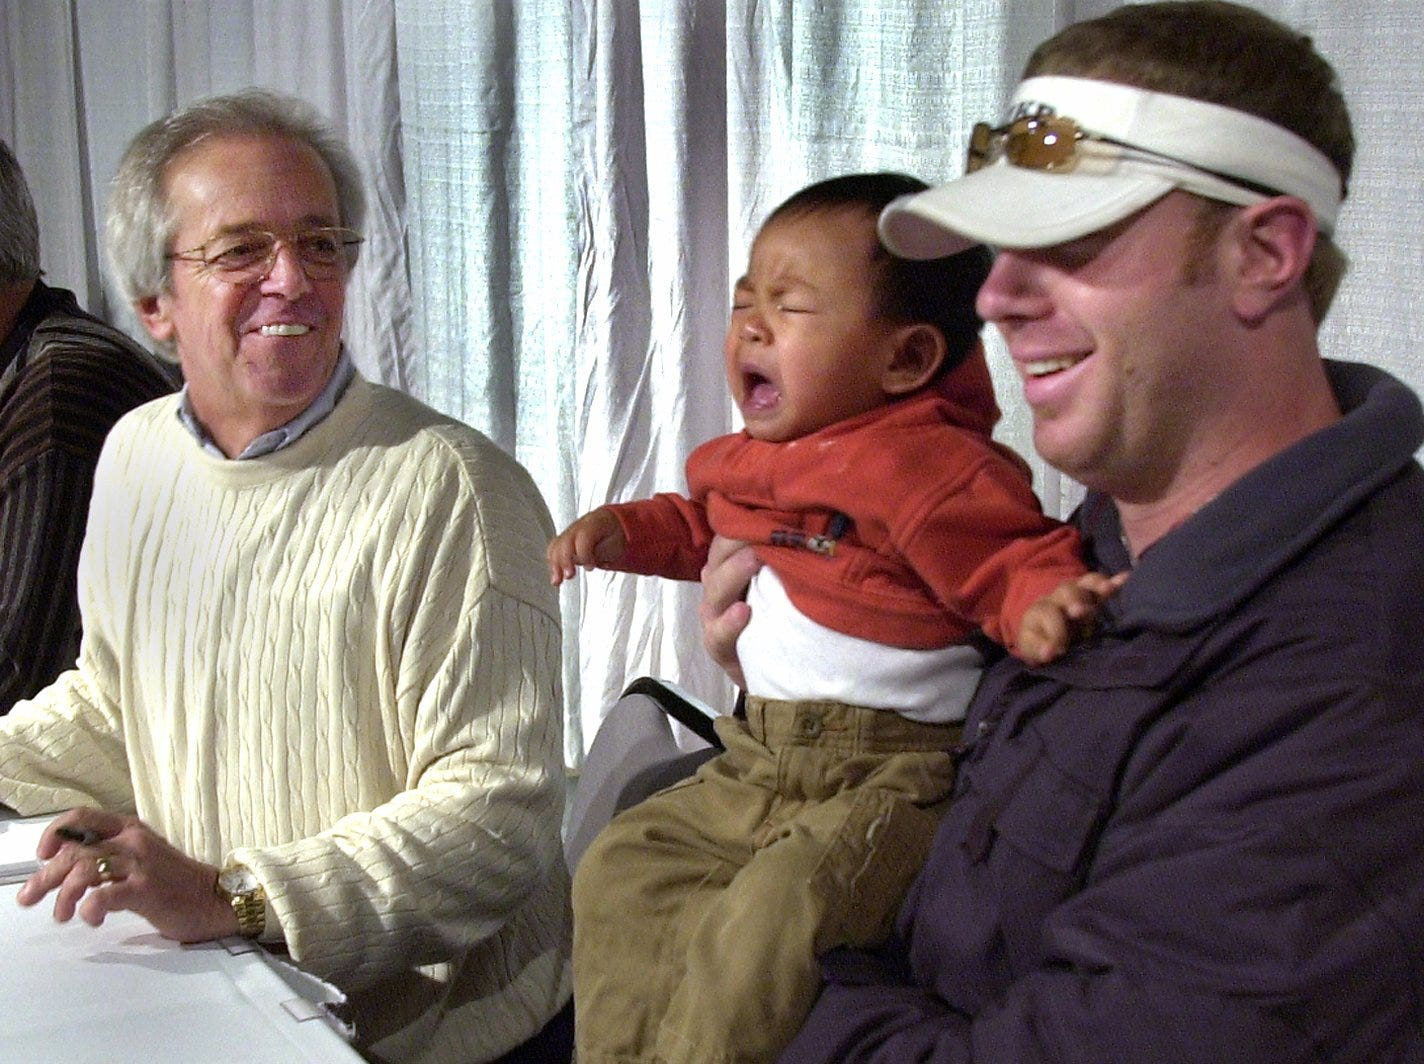 Text: 2002.0125.10.1--REDS CARAVAN--Adam Dunn holds Ethan Daniels, 15 months, of Lima, Ohio while they pose for a photo for Ethan's parents, although the boy was a little cranky as Marty Brennaman smiles at a stop in Lima, Ohio, as a small group of the Cincinnati Reds headed out on a tour bus for a three state trip. The Reds Caravan brings players, front office staff and other Reds organization members in contact with the public. Photo by Craig Ruttle/Cincinnati Enquirer